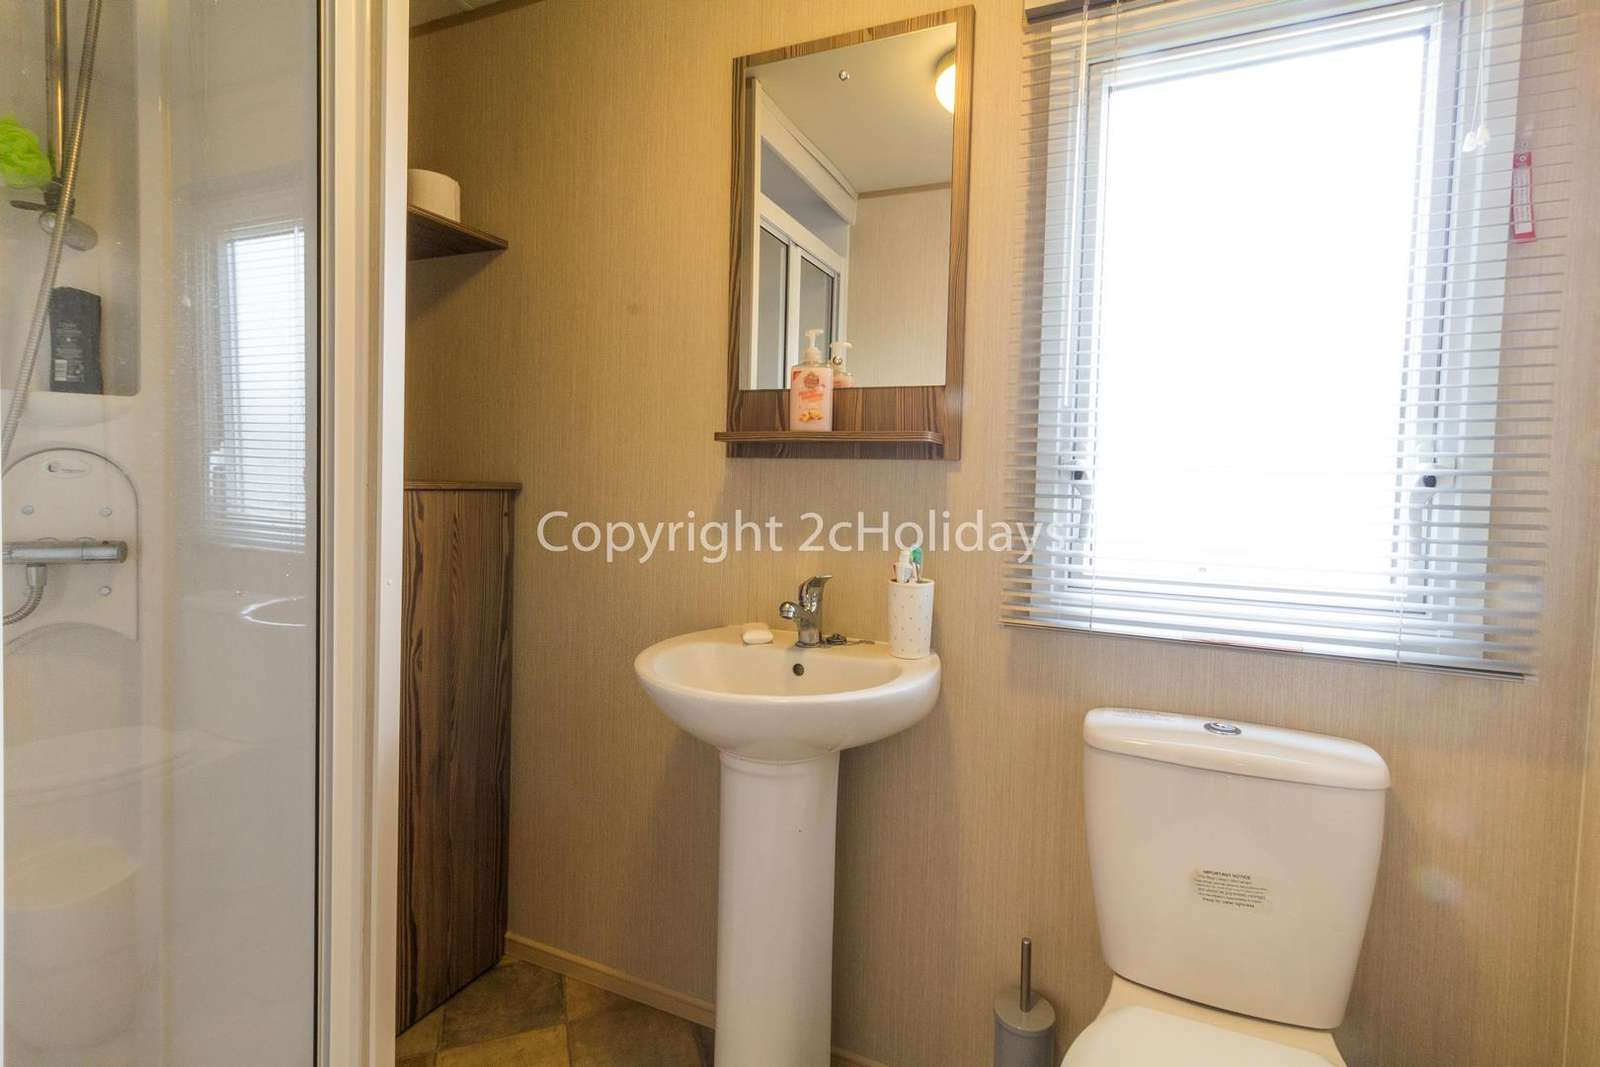 We ensure that all our holiday homes. are cleaned to a high standard